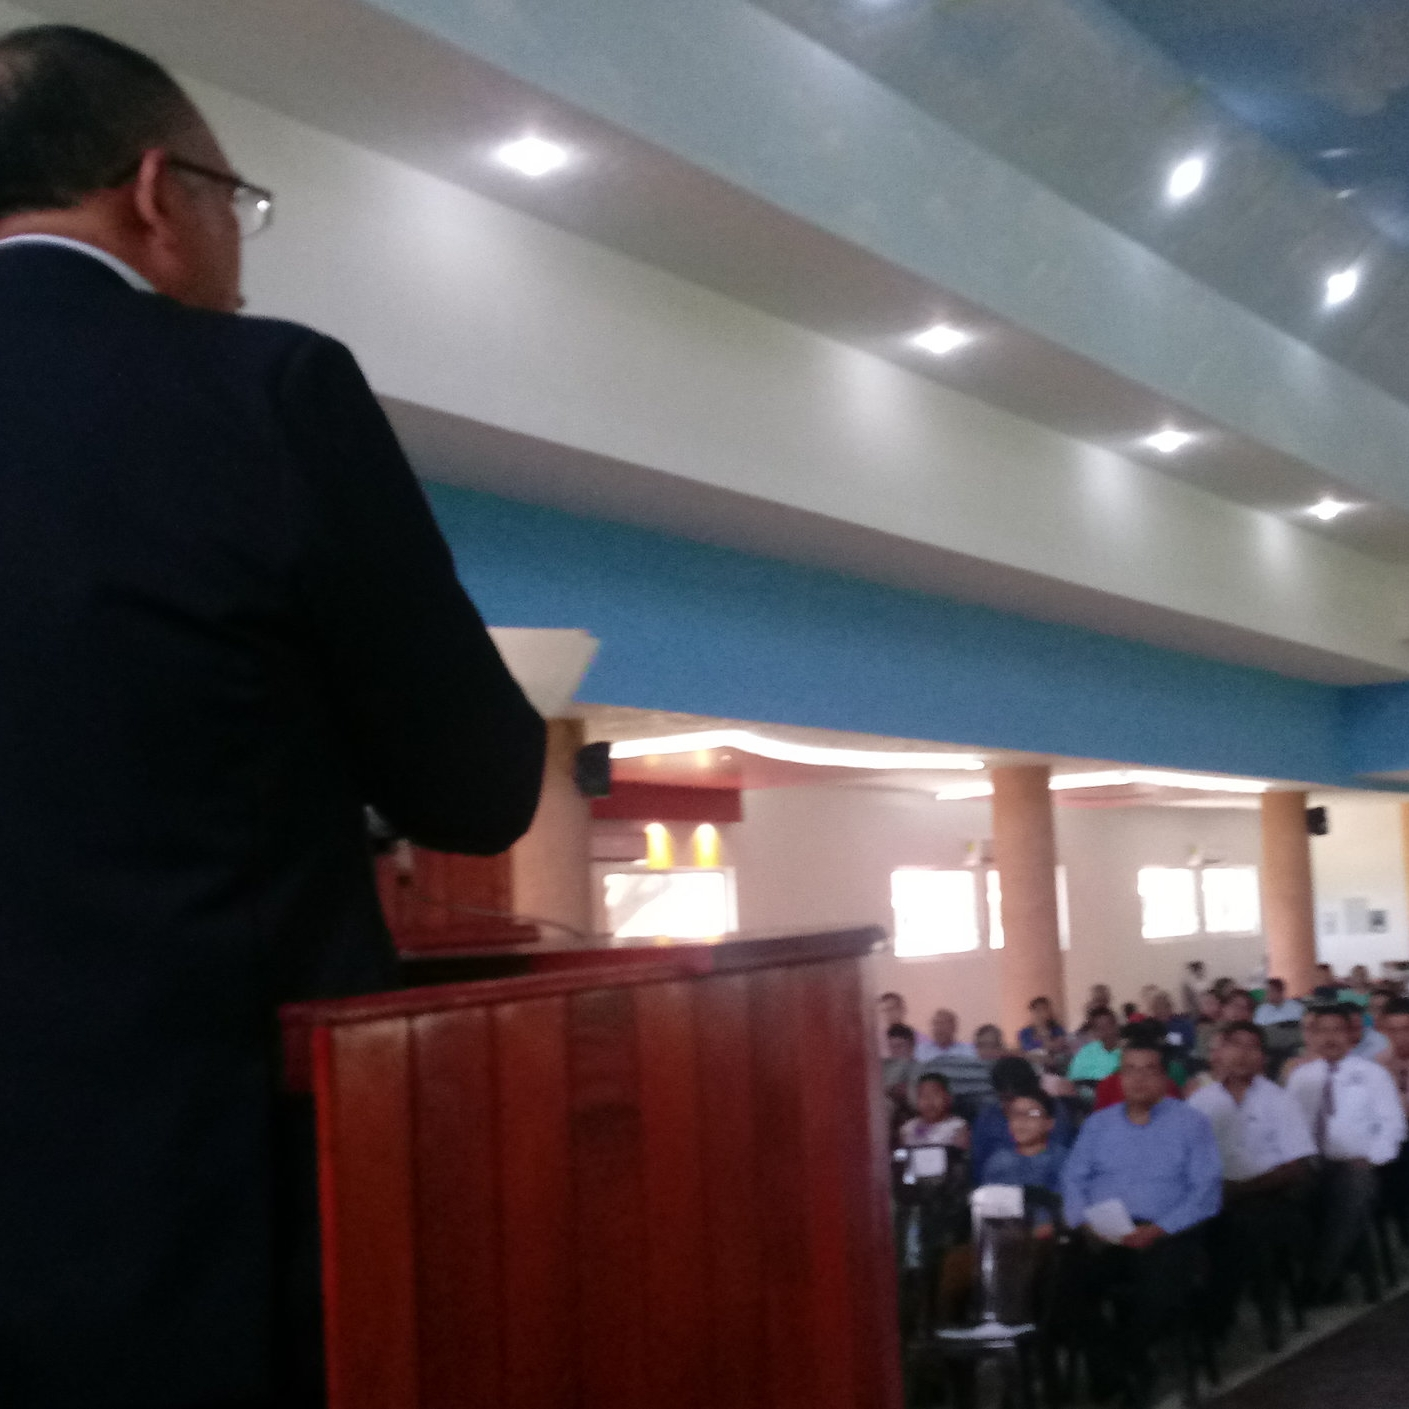 Around 600 people worshiped together in the service of thanksgiving for the remodeling of the chapel at the Sureste Seminary in Villahermosa, Tabasco